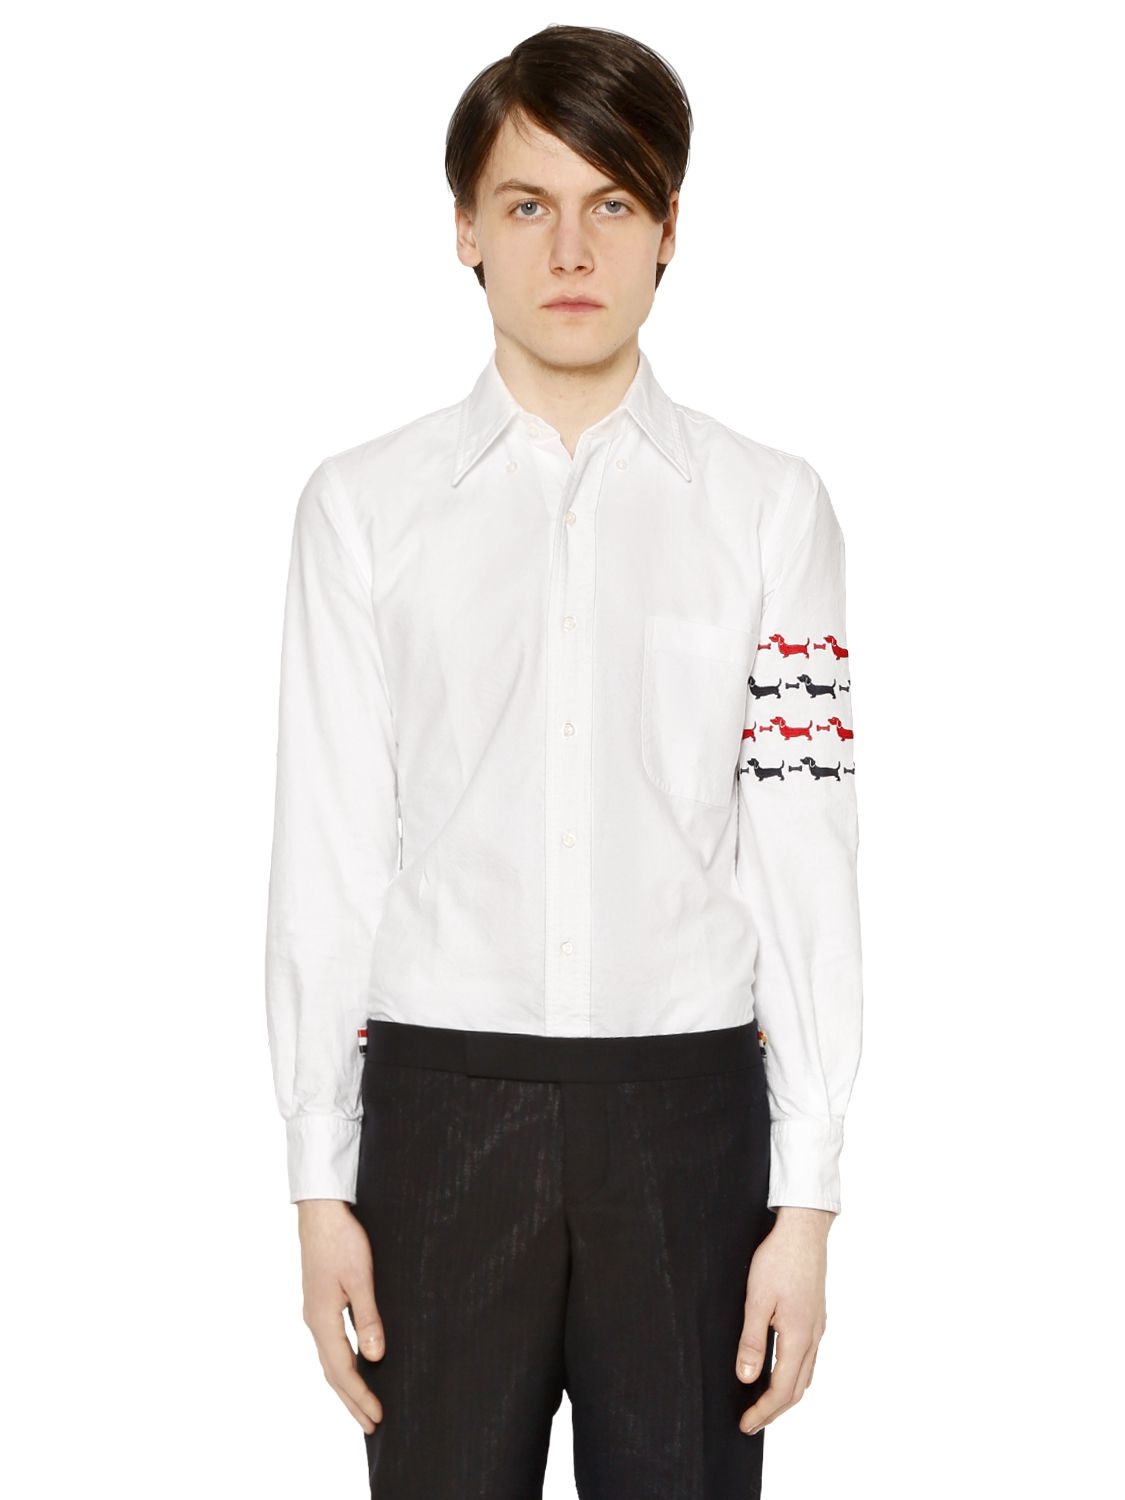 Thom browne dogs arm embroidery oxford cotton shirt in for Thom browne white shirt